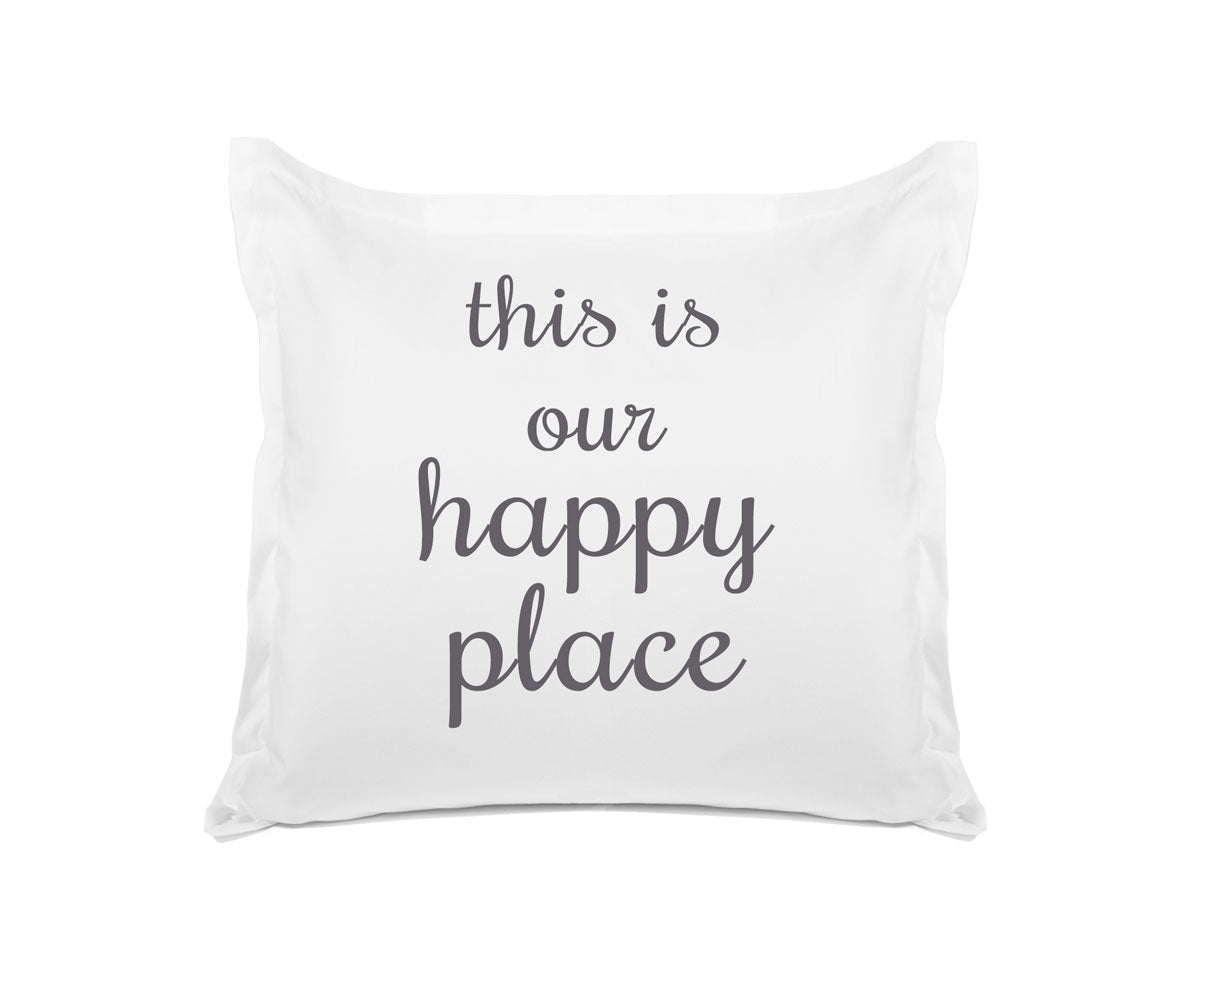 This Is Our Happy Place - Inspirational Quotes Pillowcase Collection-Di Lewis